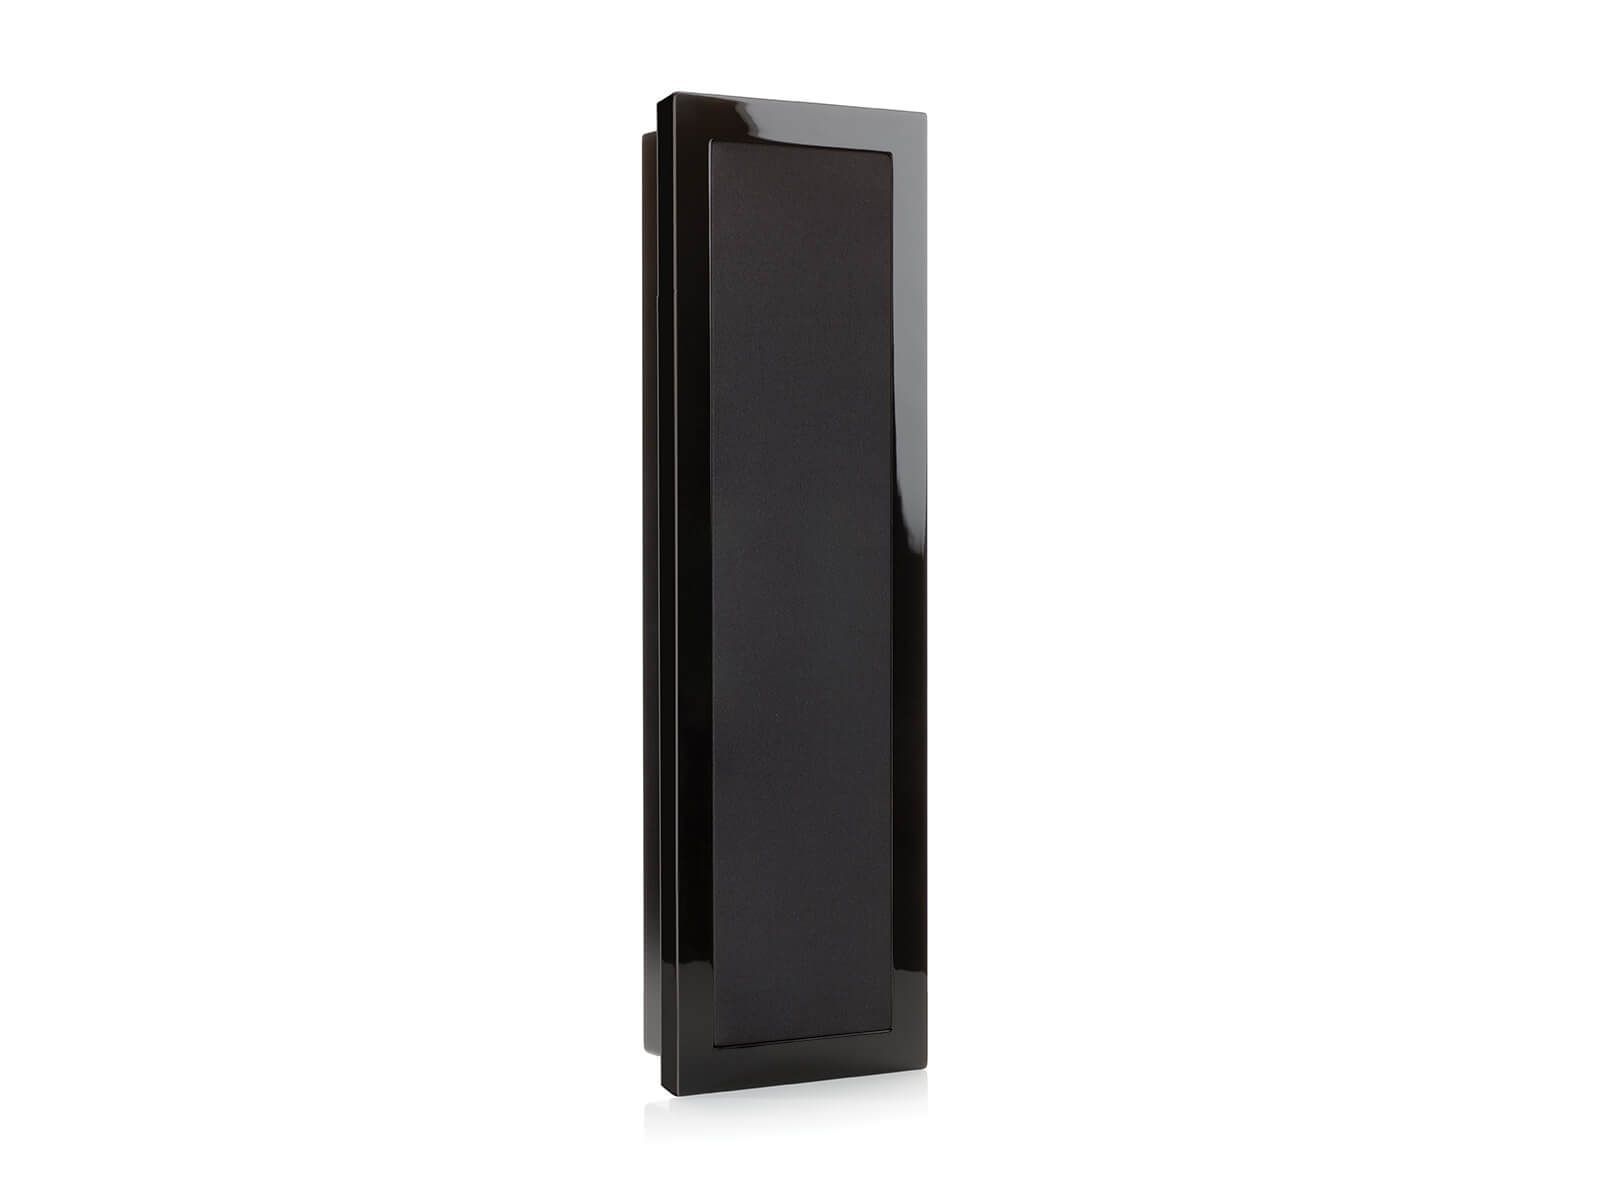 SoundFrame SF2, in-wall speakers, with a high gloss black lacquer finish.